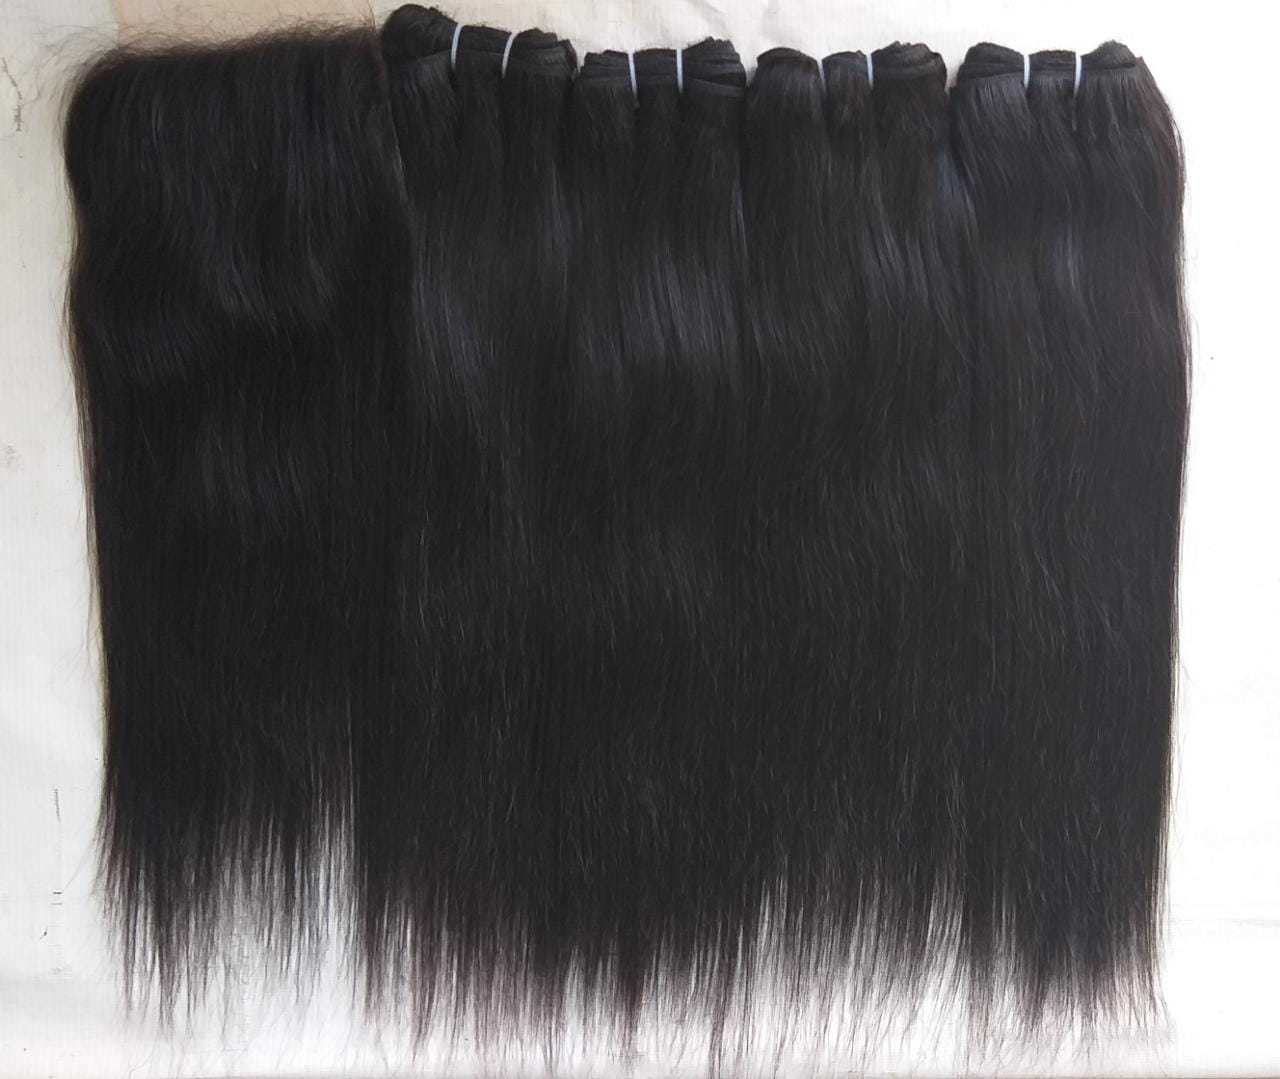 Raw Remy Straight human hair,Wholesale High Quality Straight Human Hair bundles